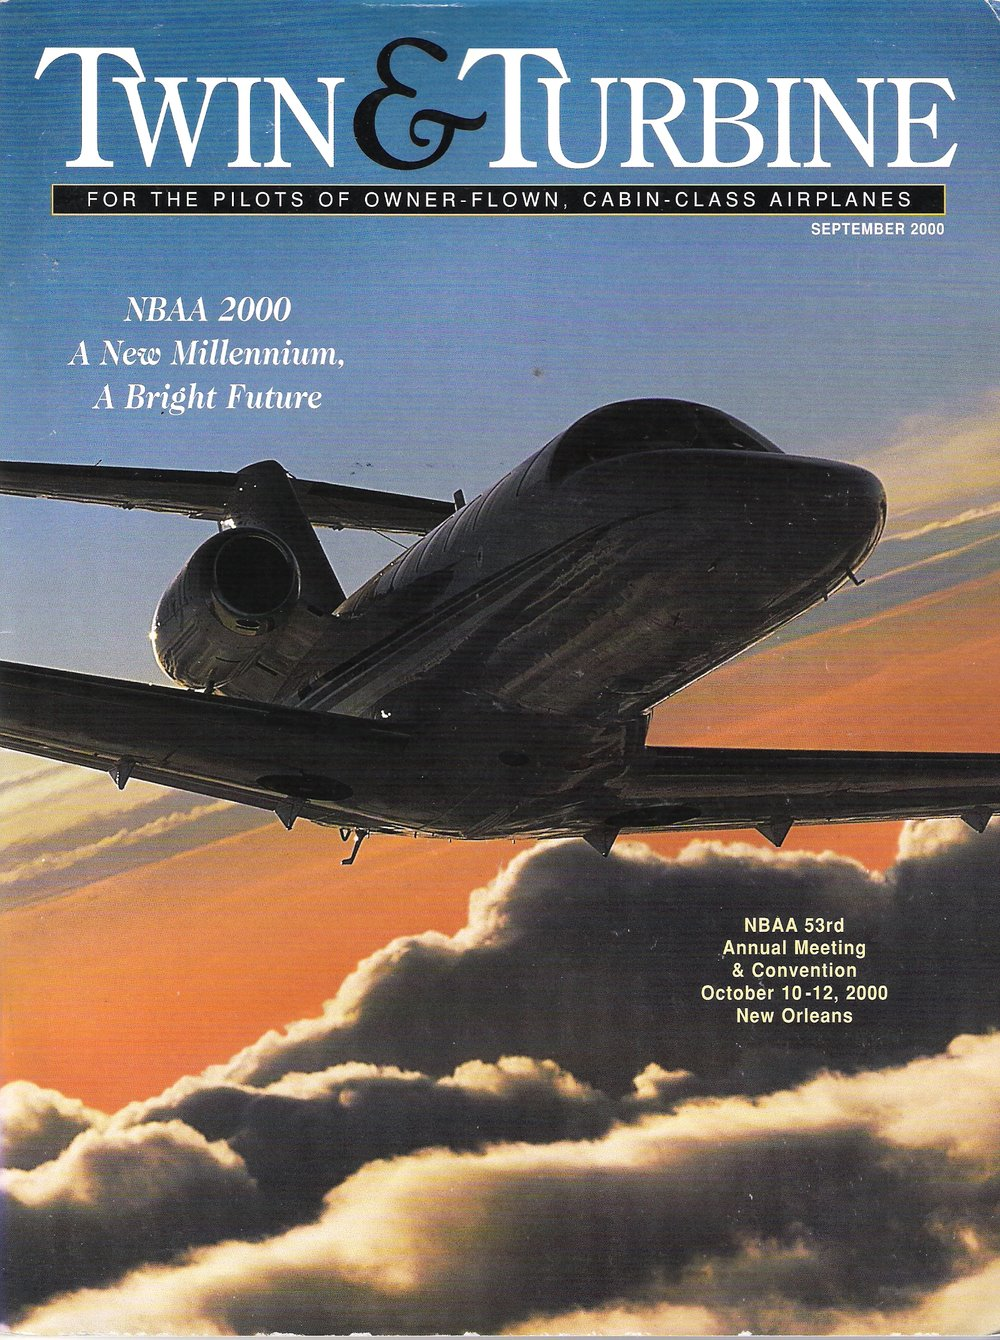 Twin & Turbine Magazine - NBAA edition (September 2000)